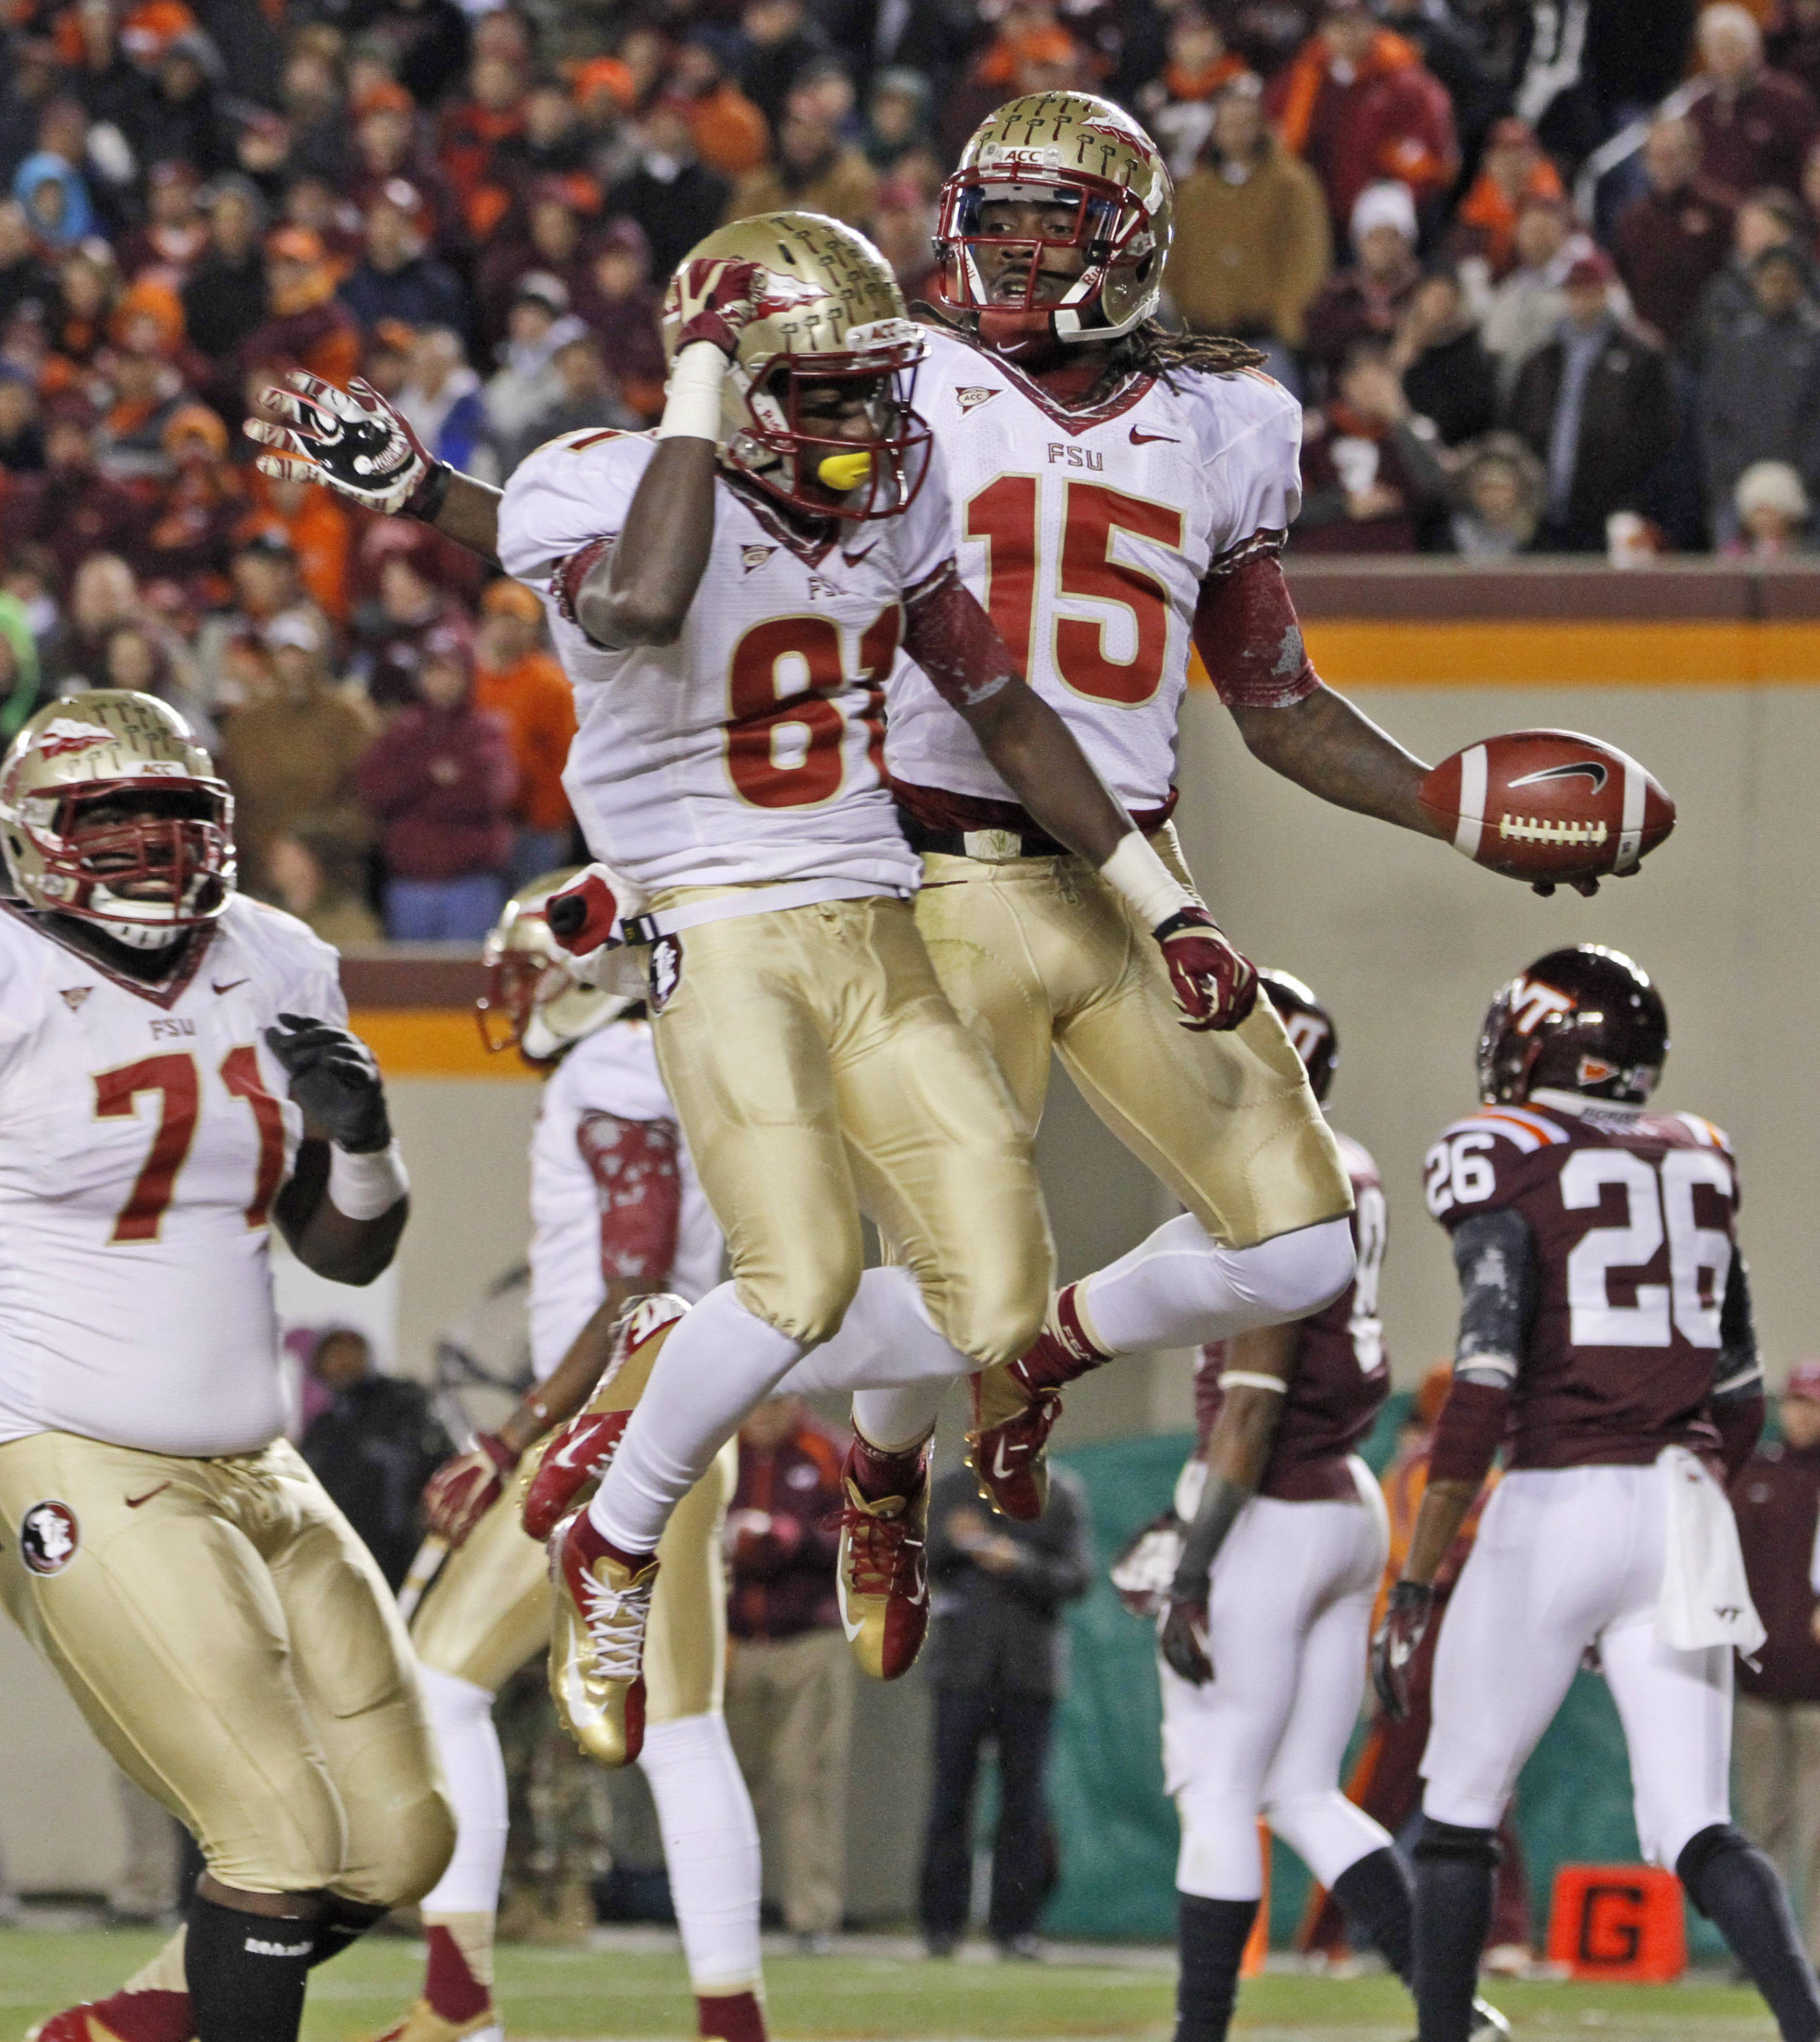 Florida State wide receiver Greg Dent (15) celebrates a touchdown with teammate Rashad Greene (80). (AP Photo/Steve Helber)